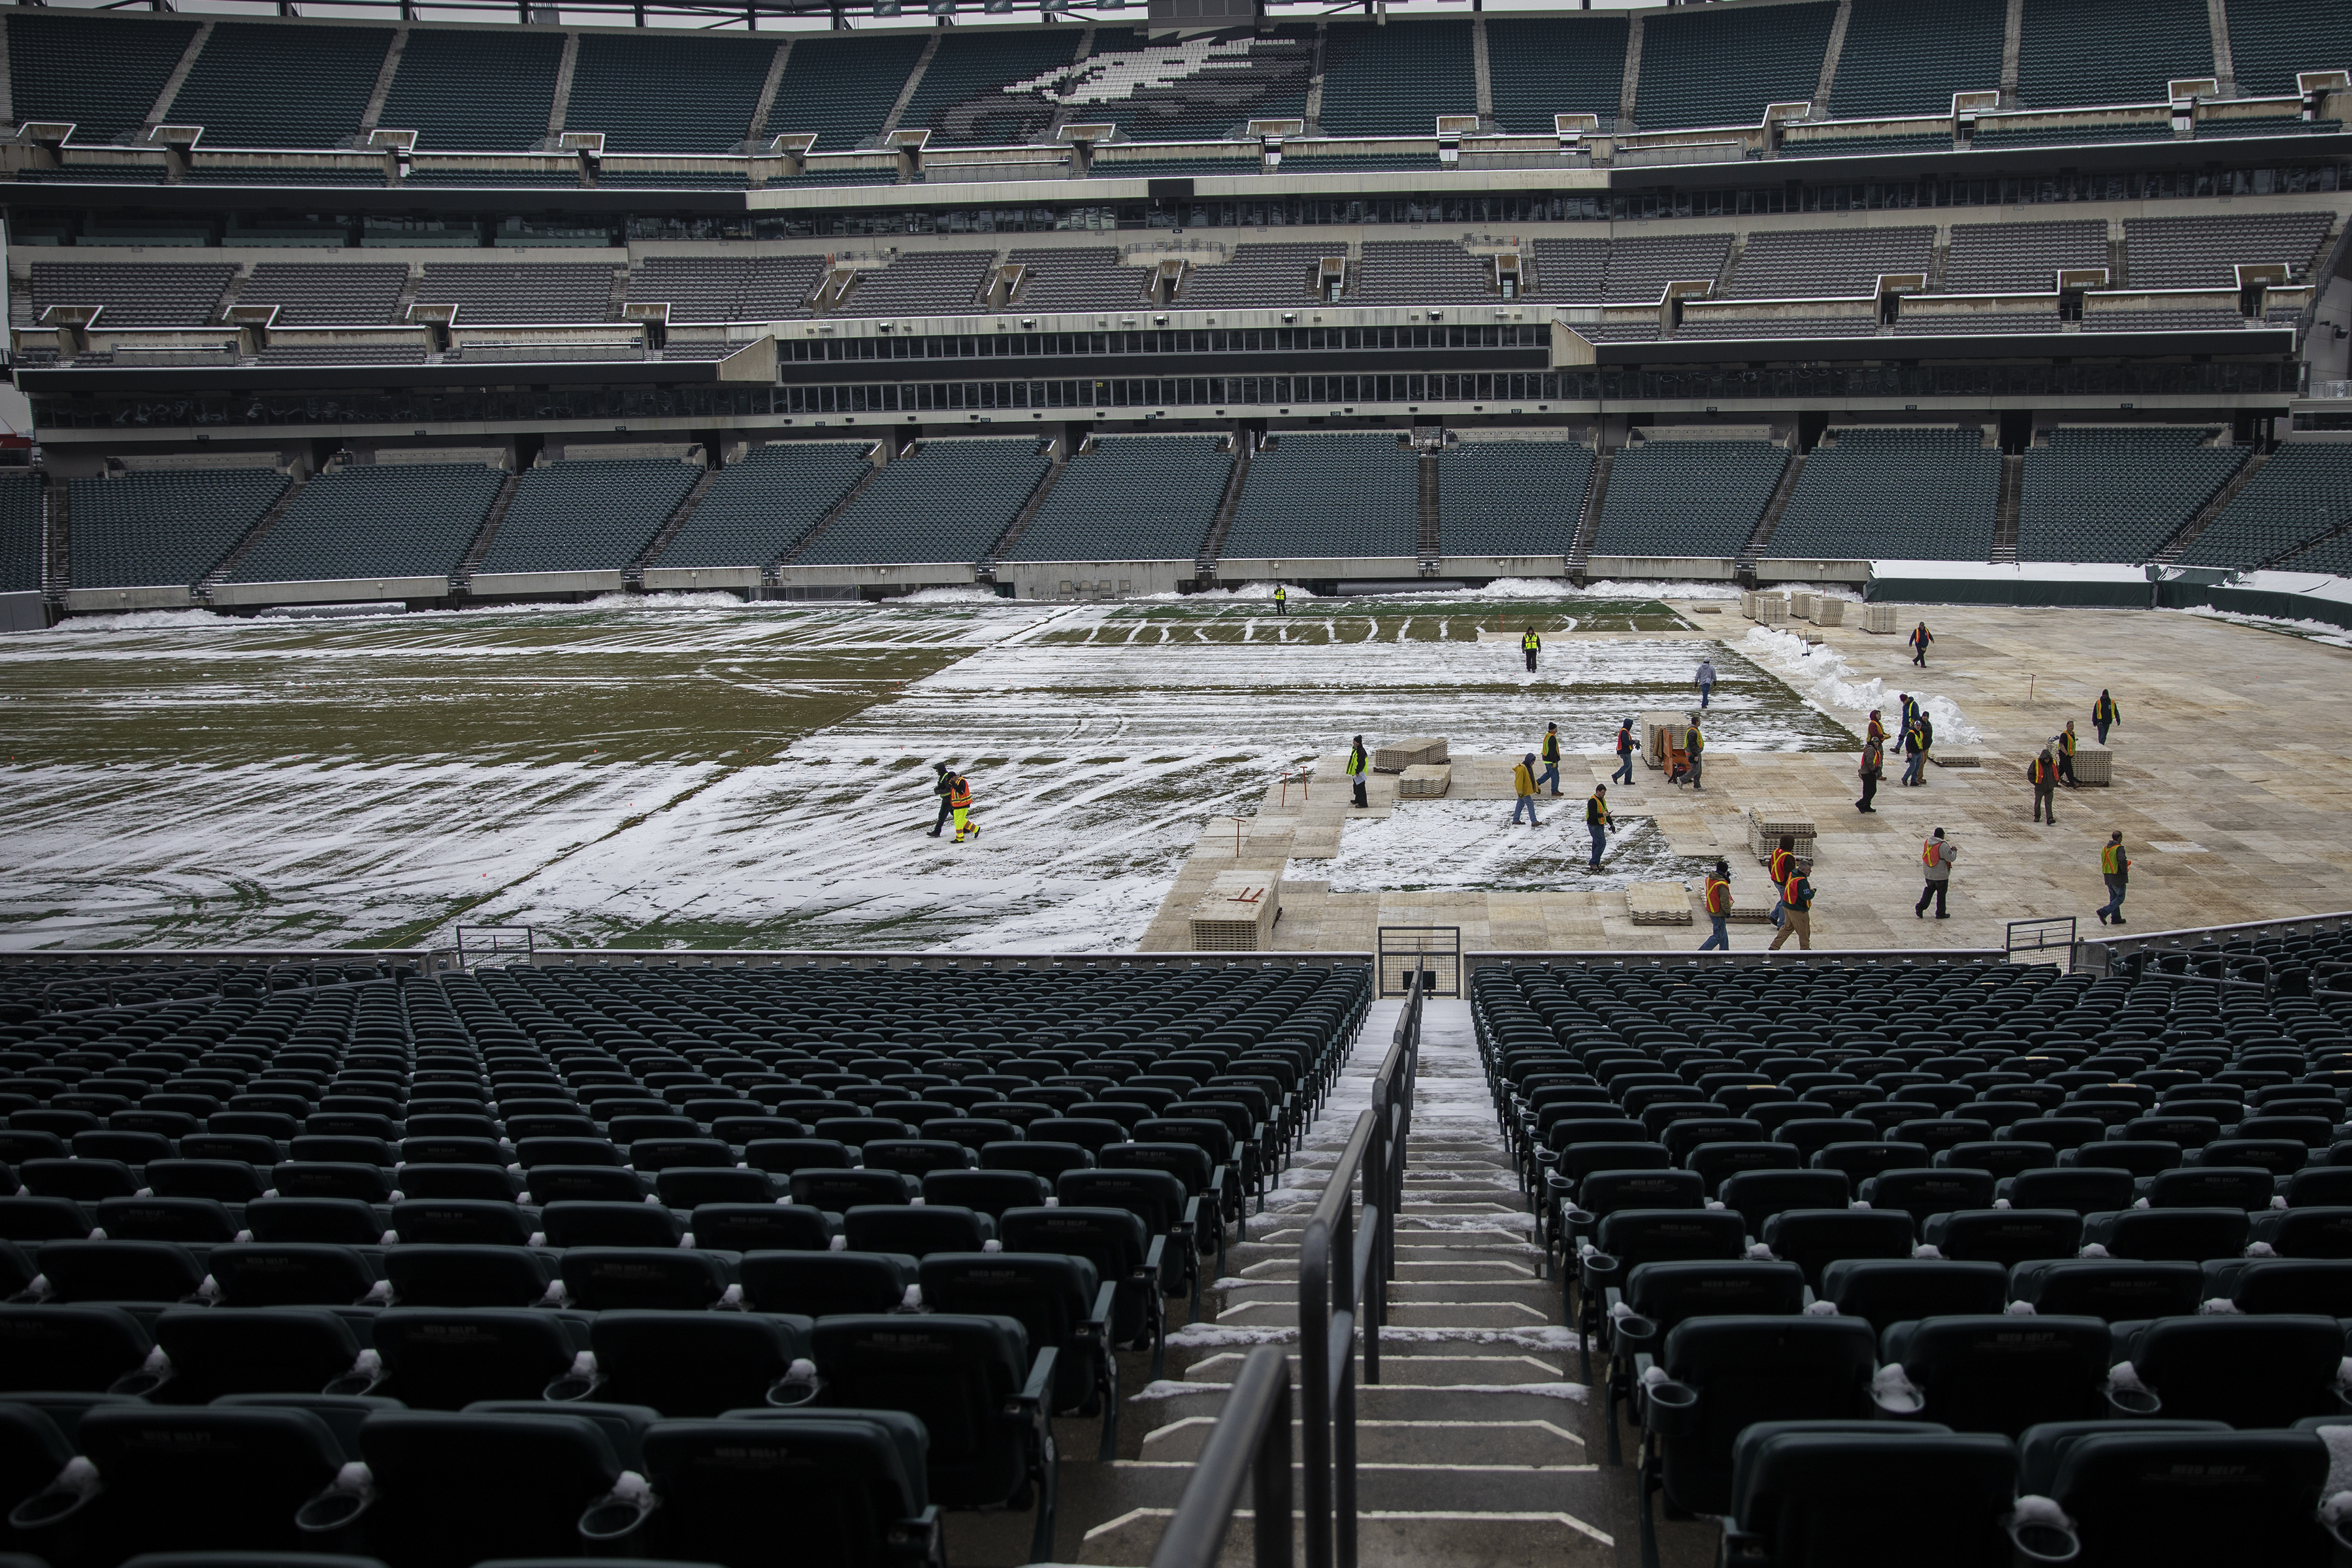 Nhl Begins Prep For Flyers Stadium Series Game Vs Penguins At Lincoln Financial Field